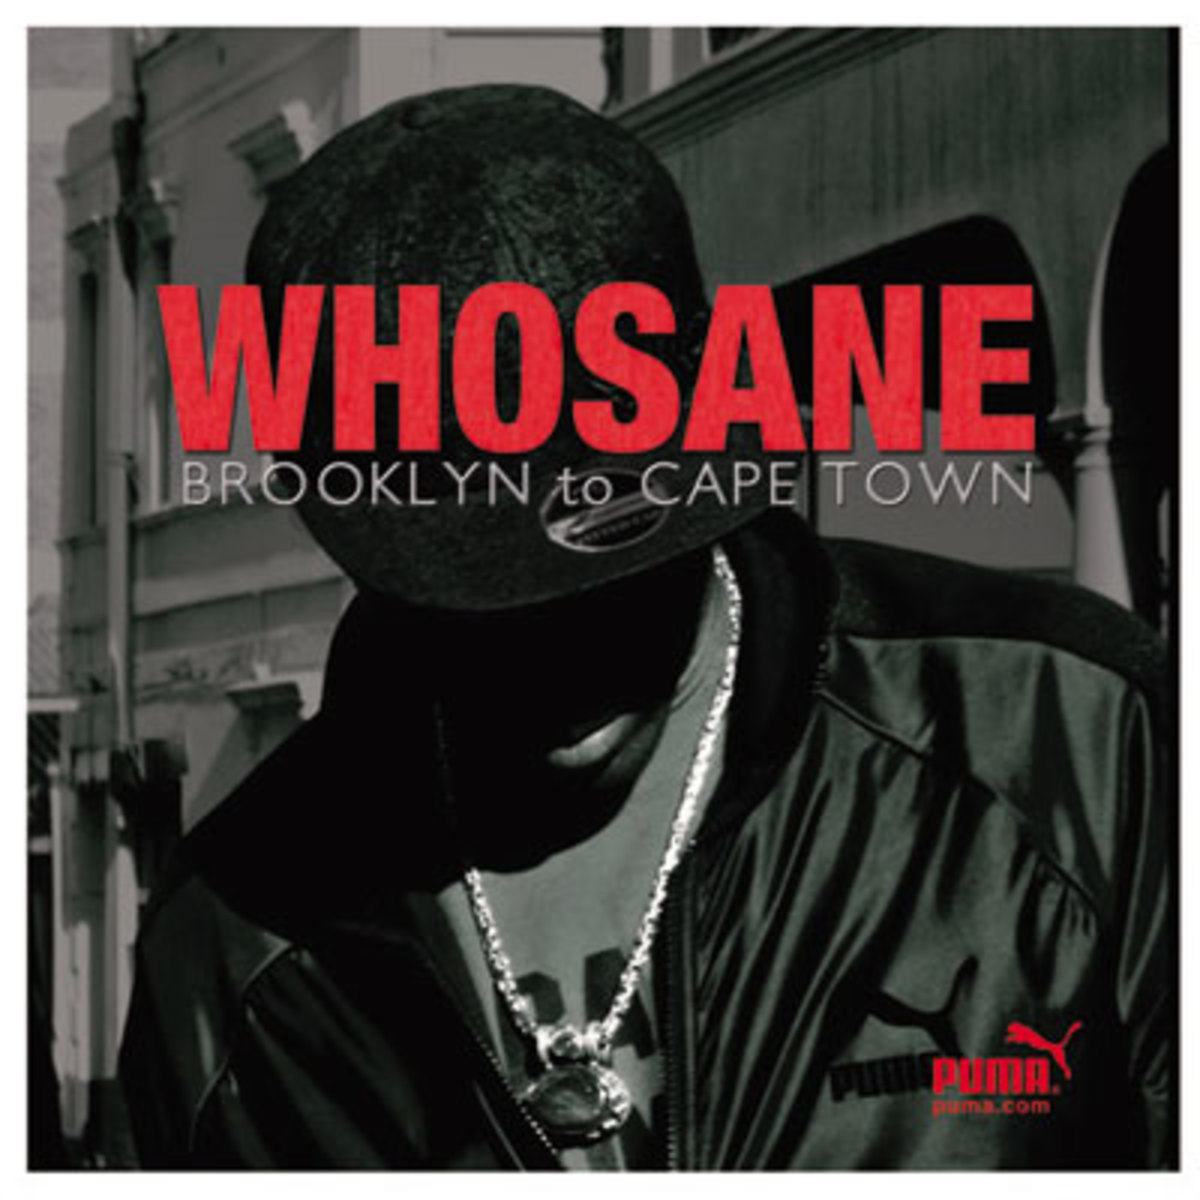 whosane-bktocapetown.jpg